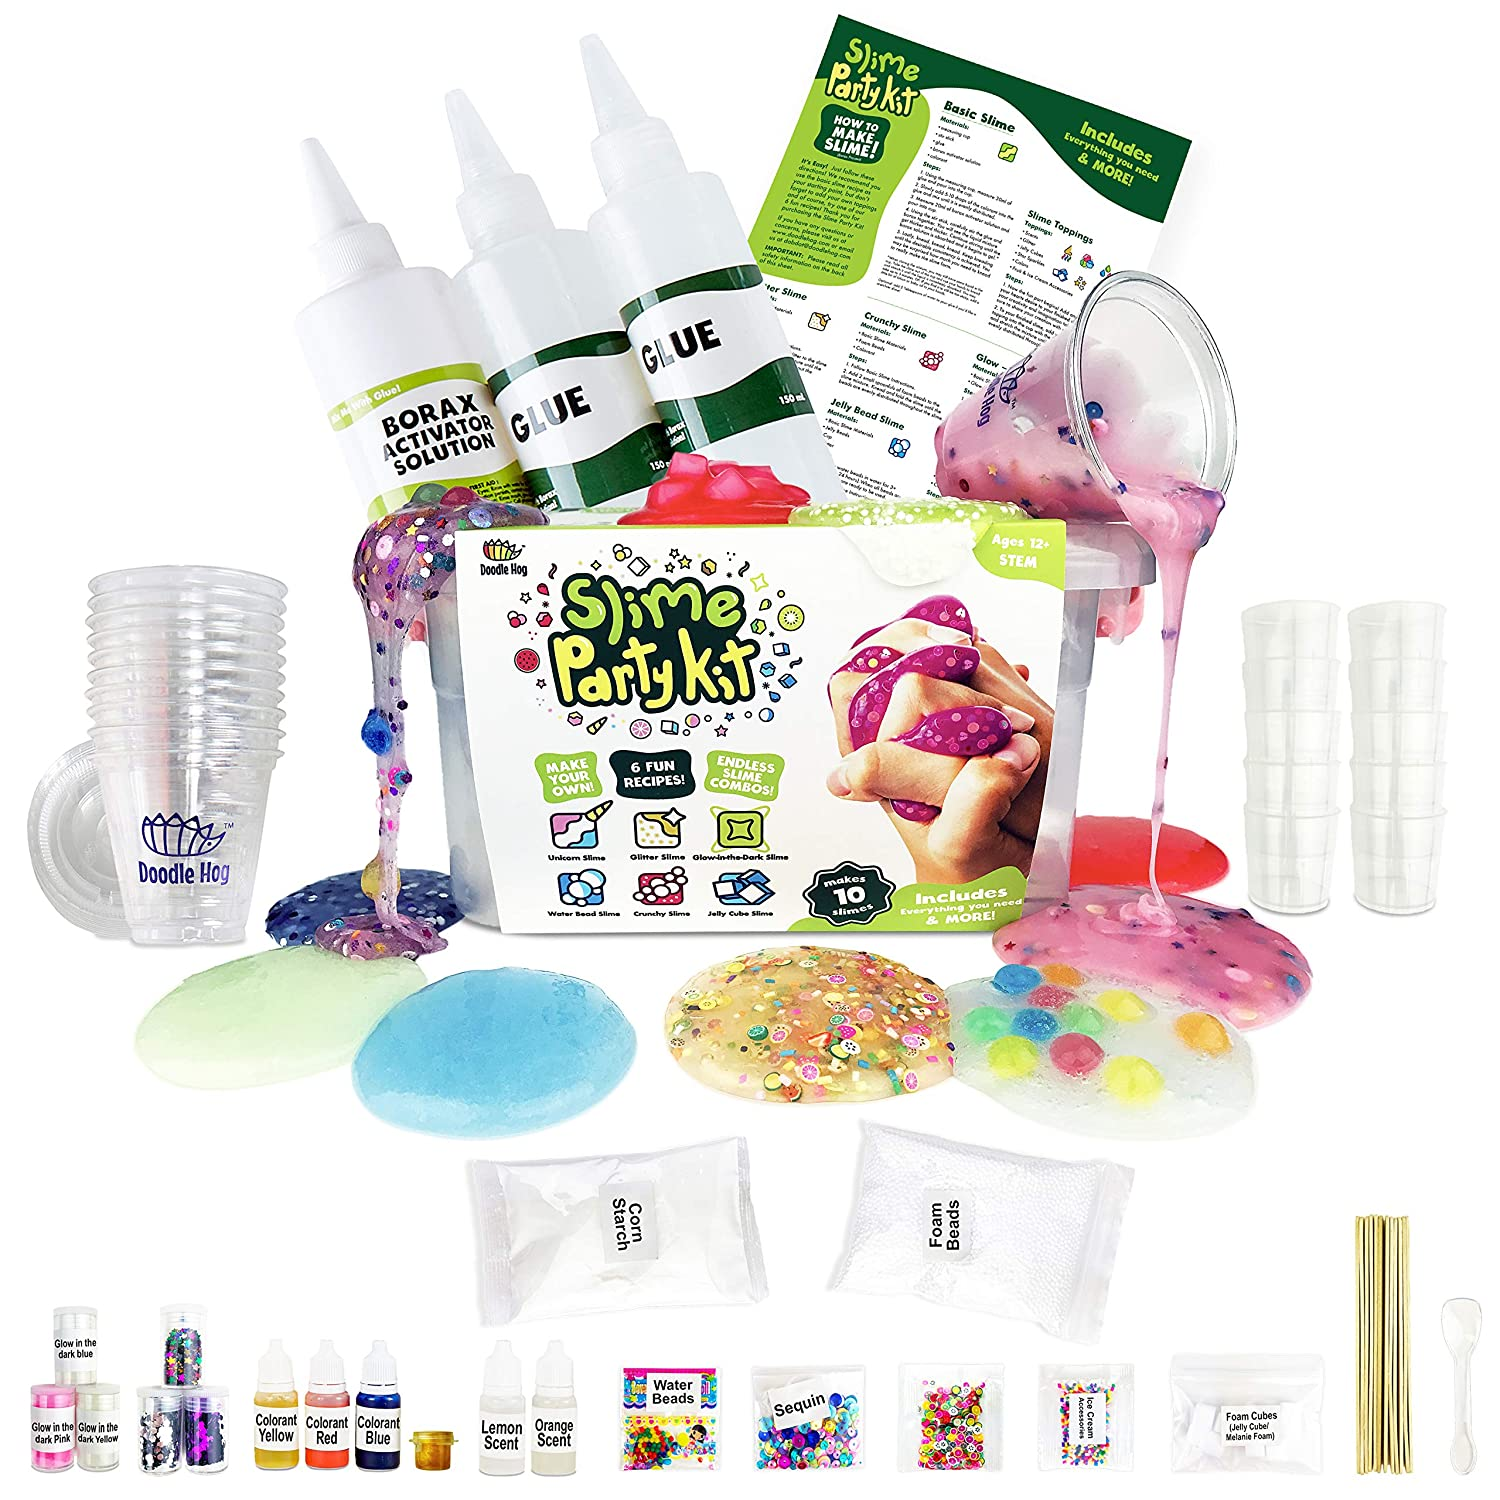 918339ab Incredible Slime Party Supplies Kit for 10 Girls and Boys. Make Slimes  Stuff Jelly Cube, Glow in The Dark, Water Beads, Crunchy, Unicorn Slimes.  Kit ...